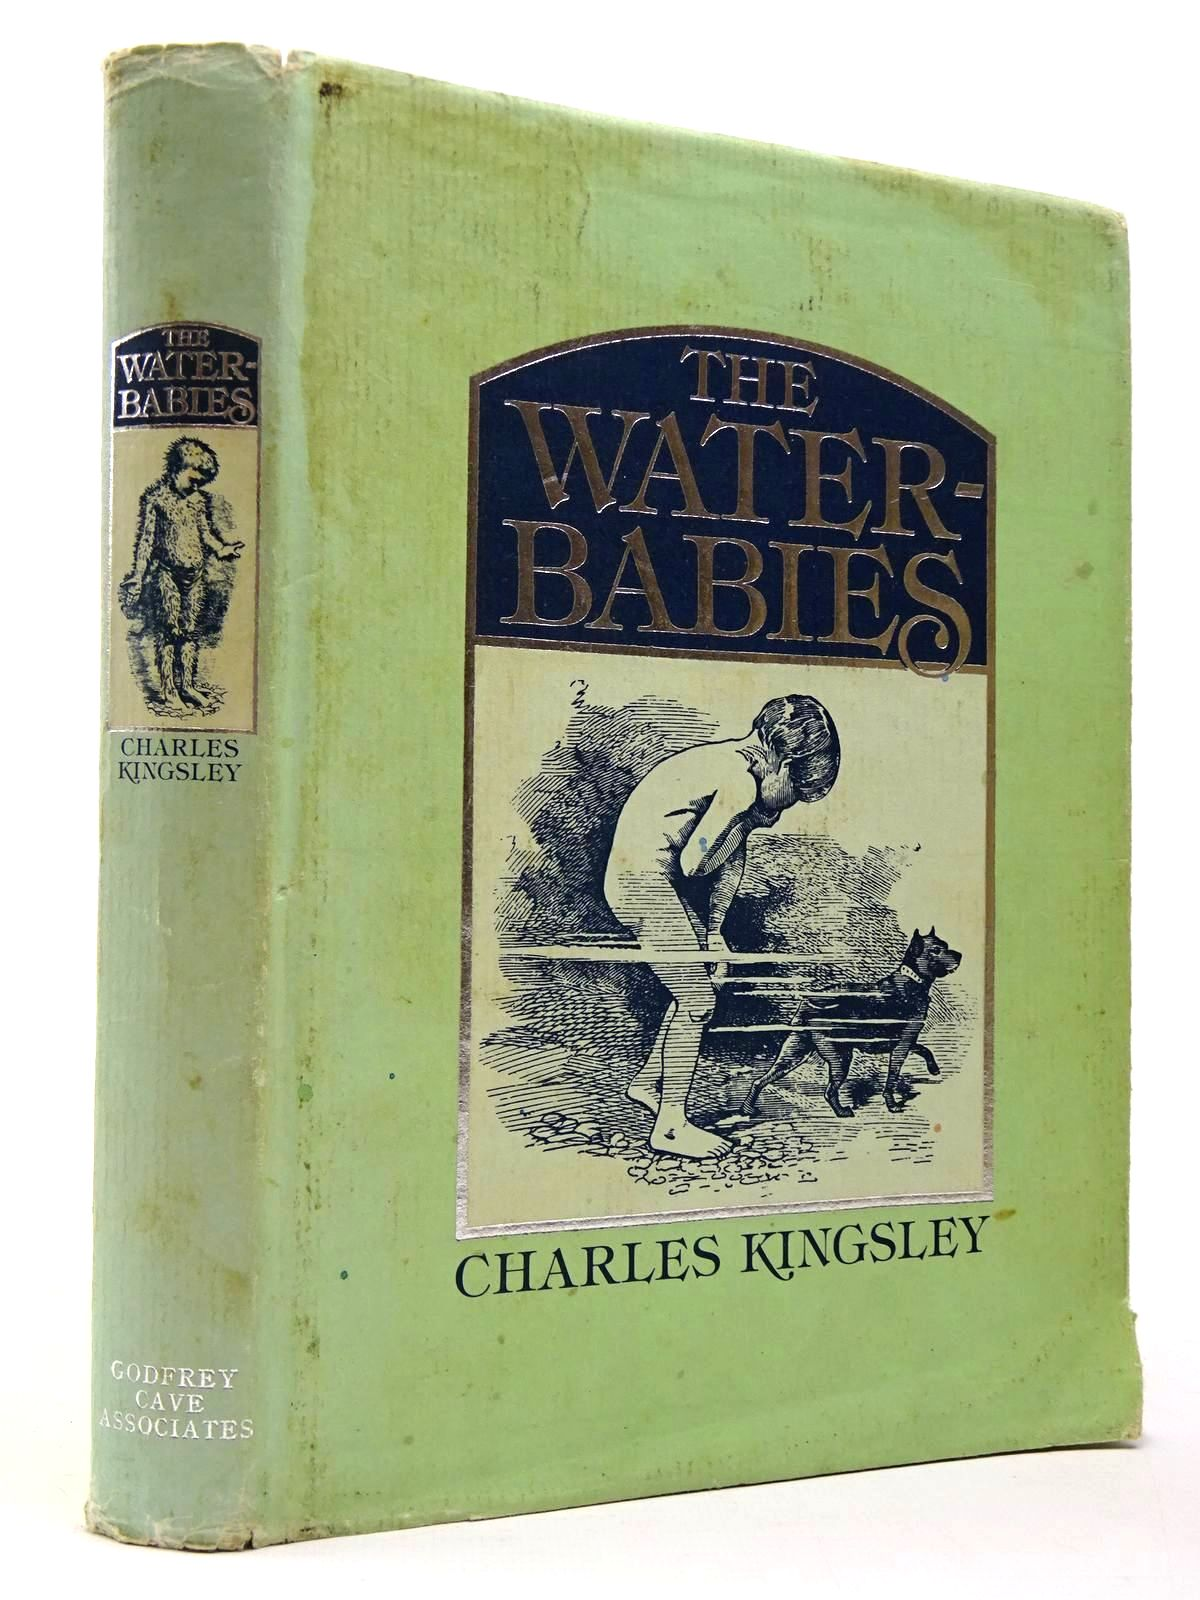 Photo of THE WATER BABIES written by Kingsley, Charles illustrated by Sambourne, Linley published by Godfrey Cave Associates (STOCK CODE: 2129737)  for sale by Stella & Rose's Books